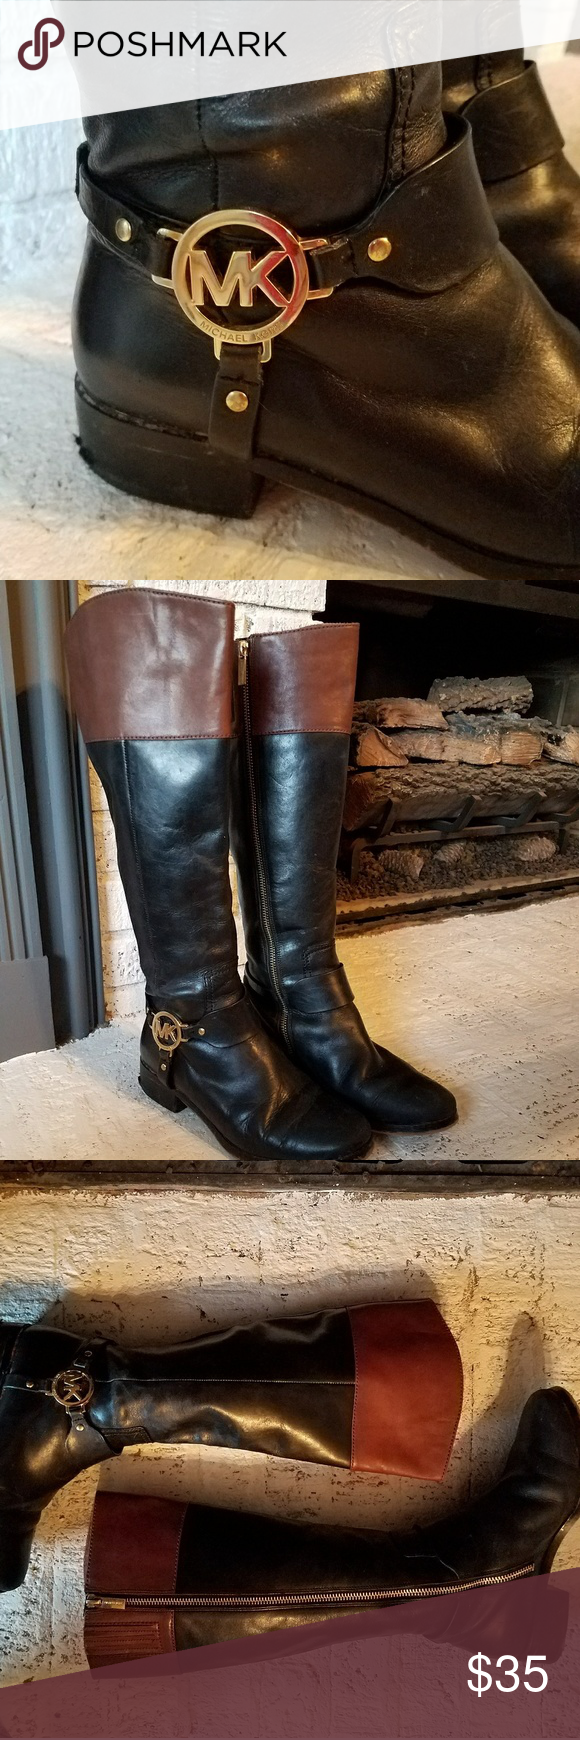 6b120898839 Michael Kors Boots A great looking pair of boots to add to your ...